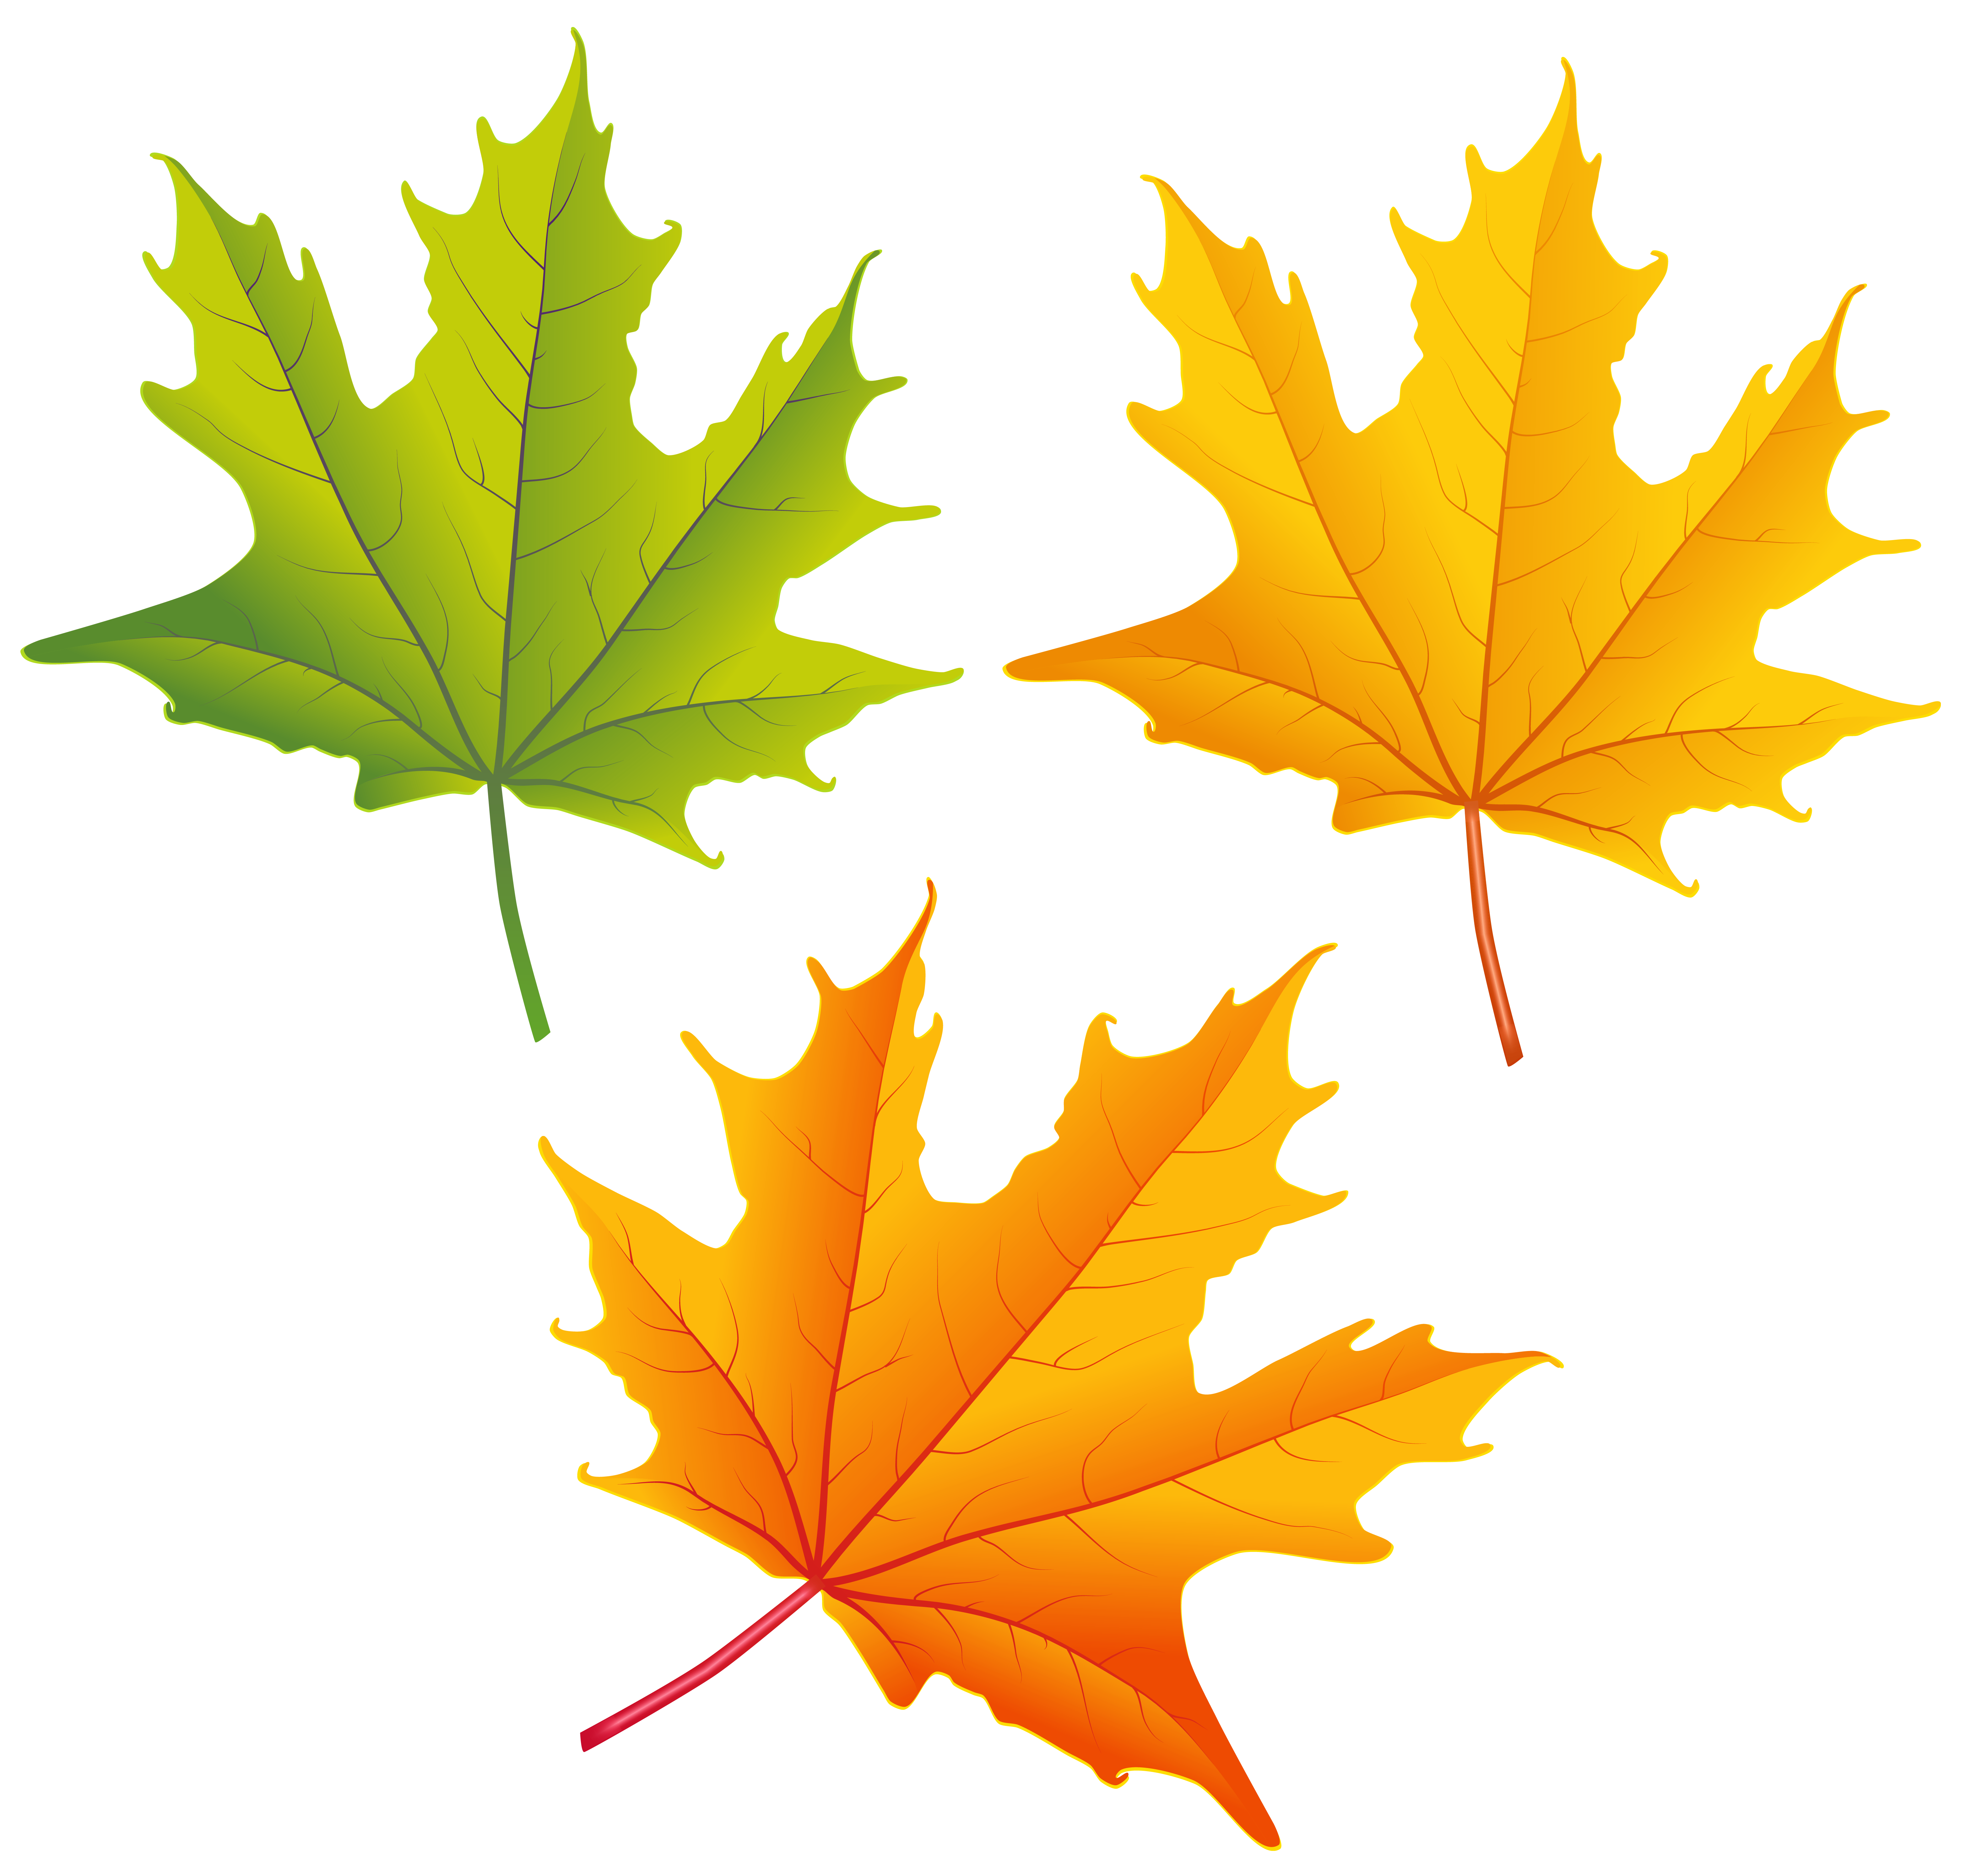 Fall Images Png - Set of Autumn Leaves PNG Clipart Image | Gallery Yopriceville ...